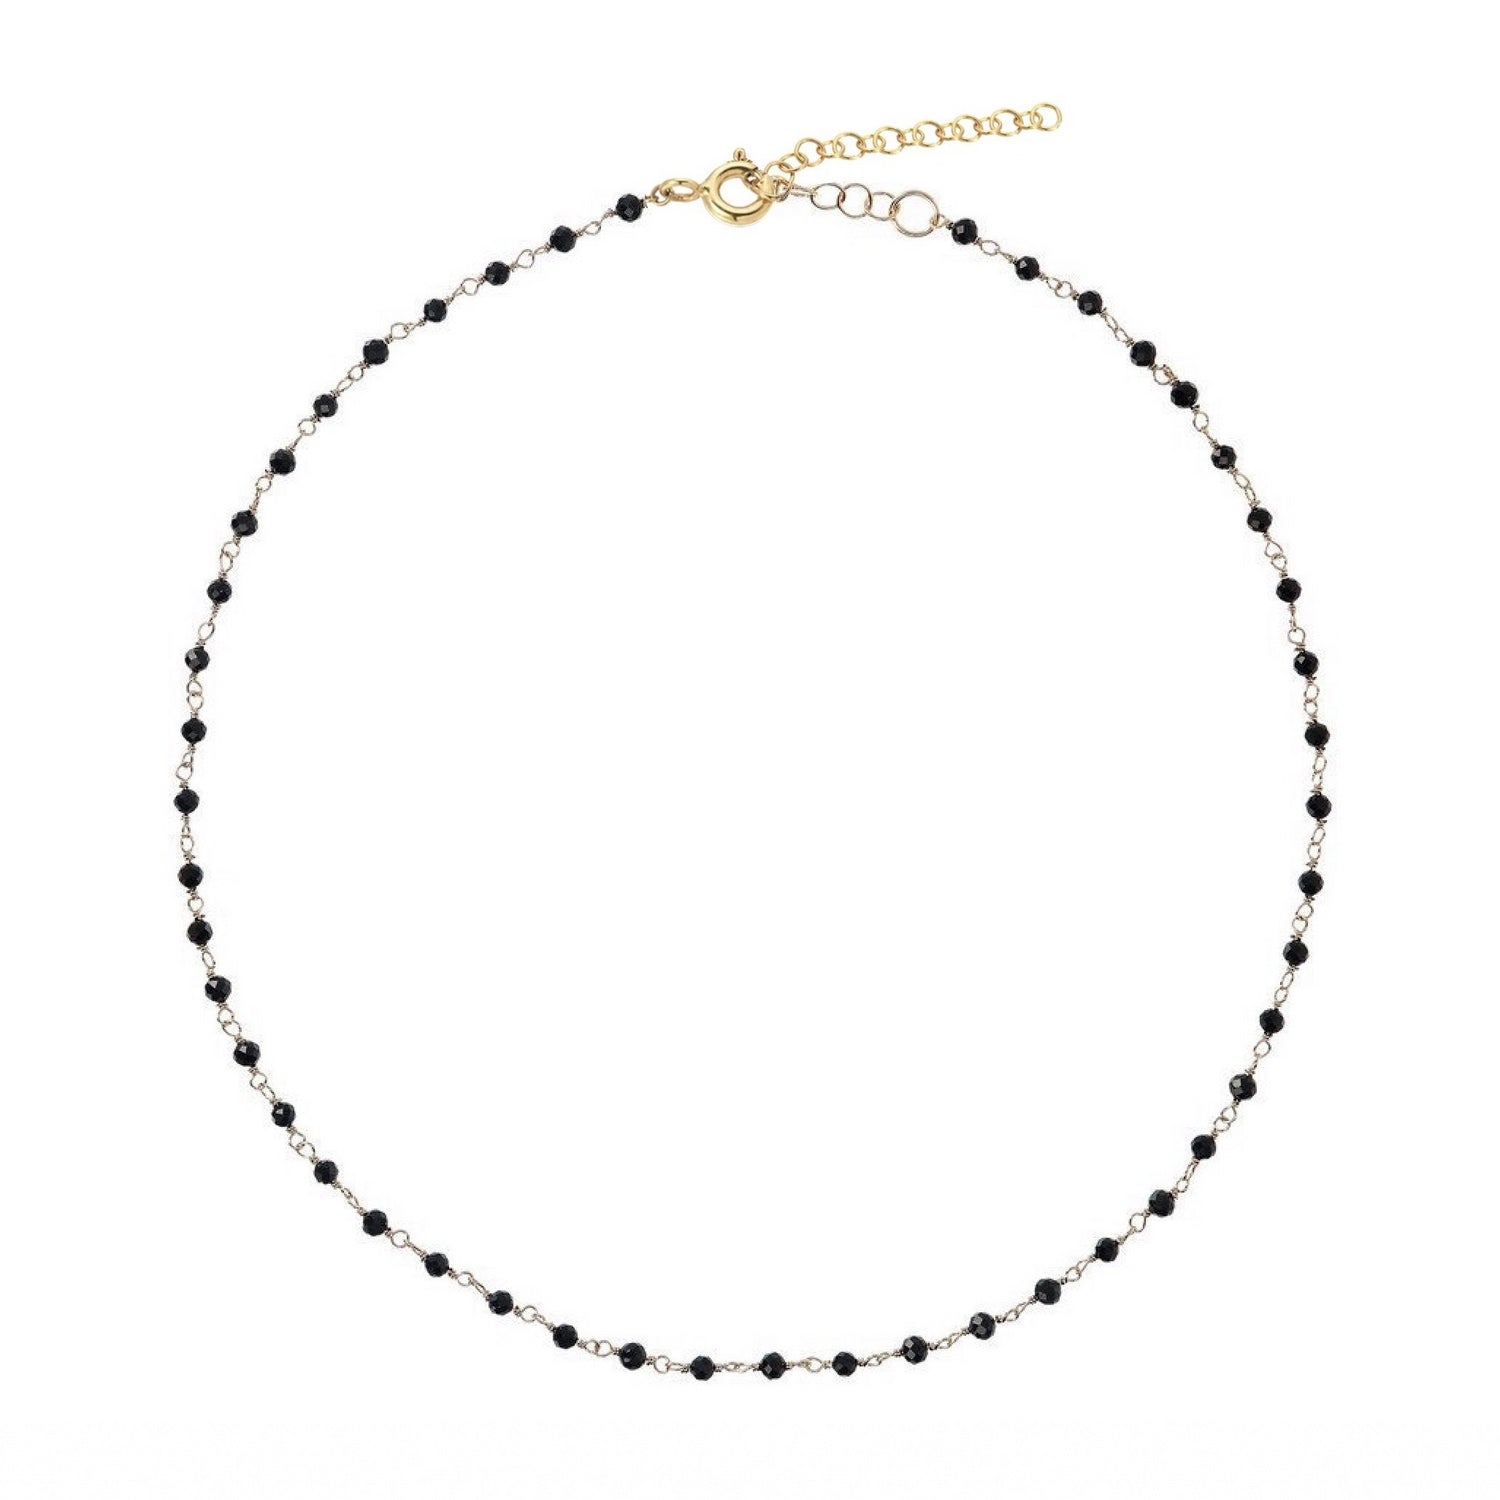 Black Spinel Choker